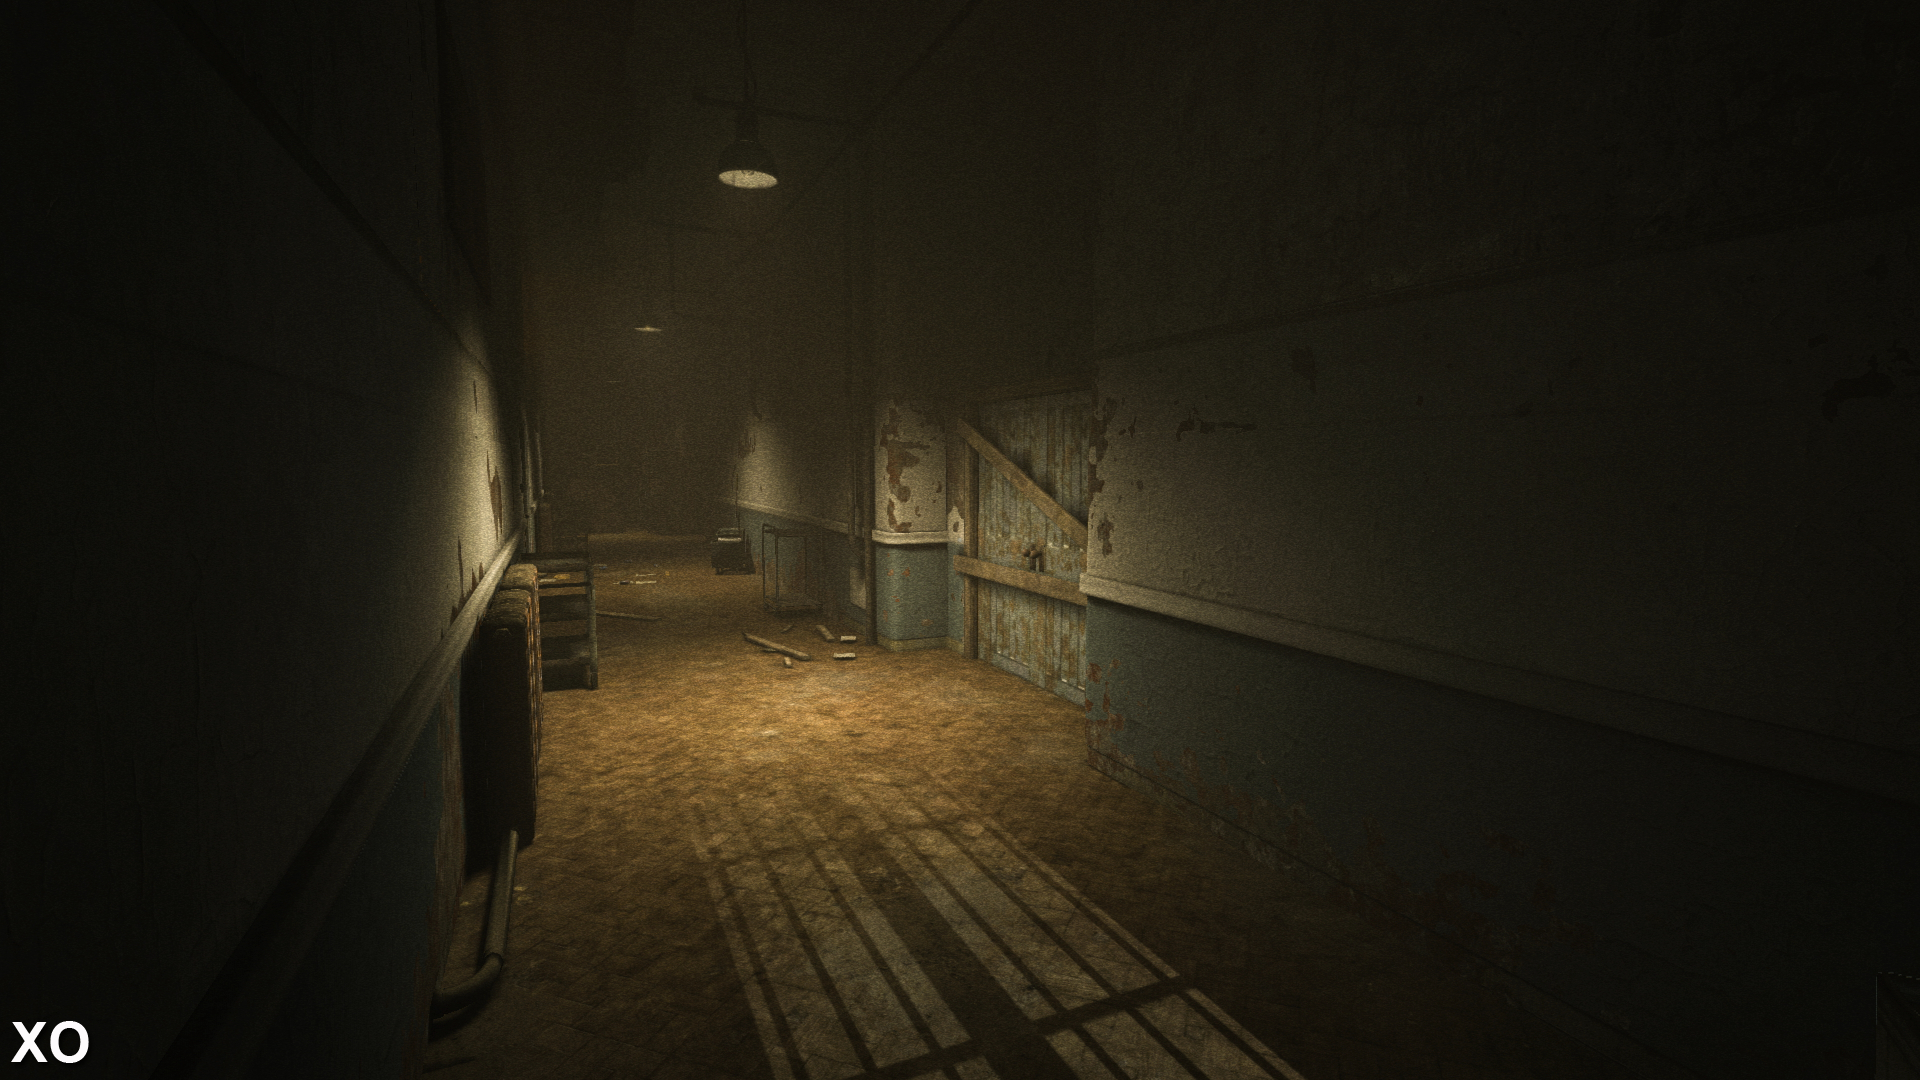 Face Off Outlast Ps4 Trinity A Typical Hallway Demonstrates Just How Similar The Three Versions Look Its Nearly Impossible To Differentiate And Xo